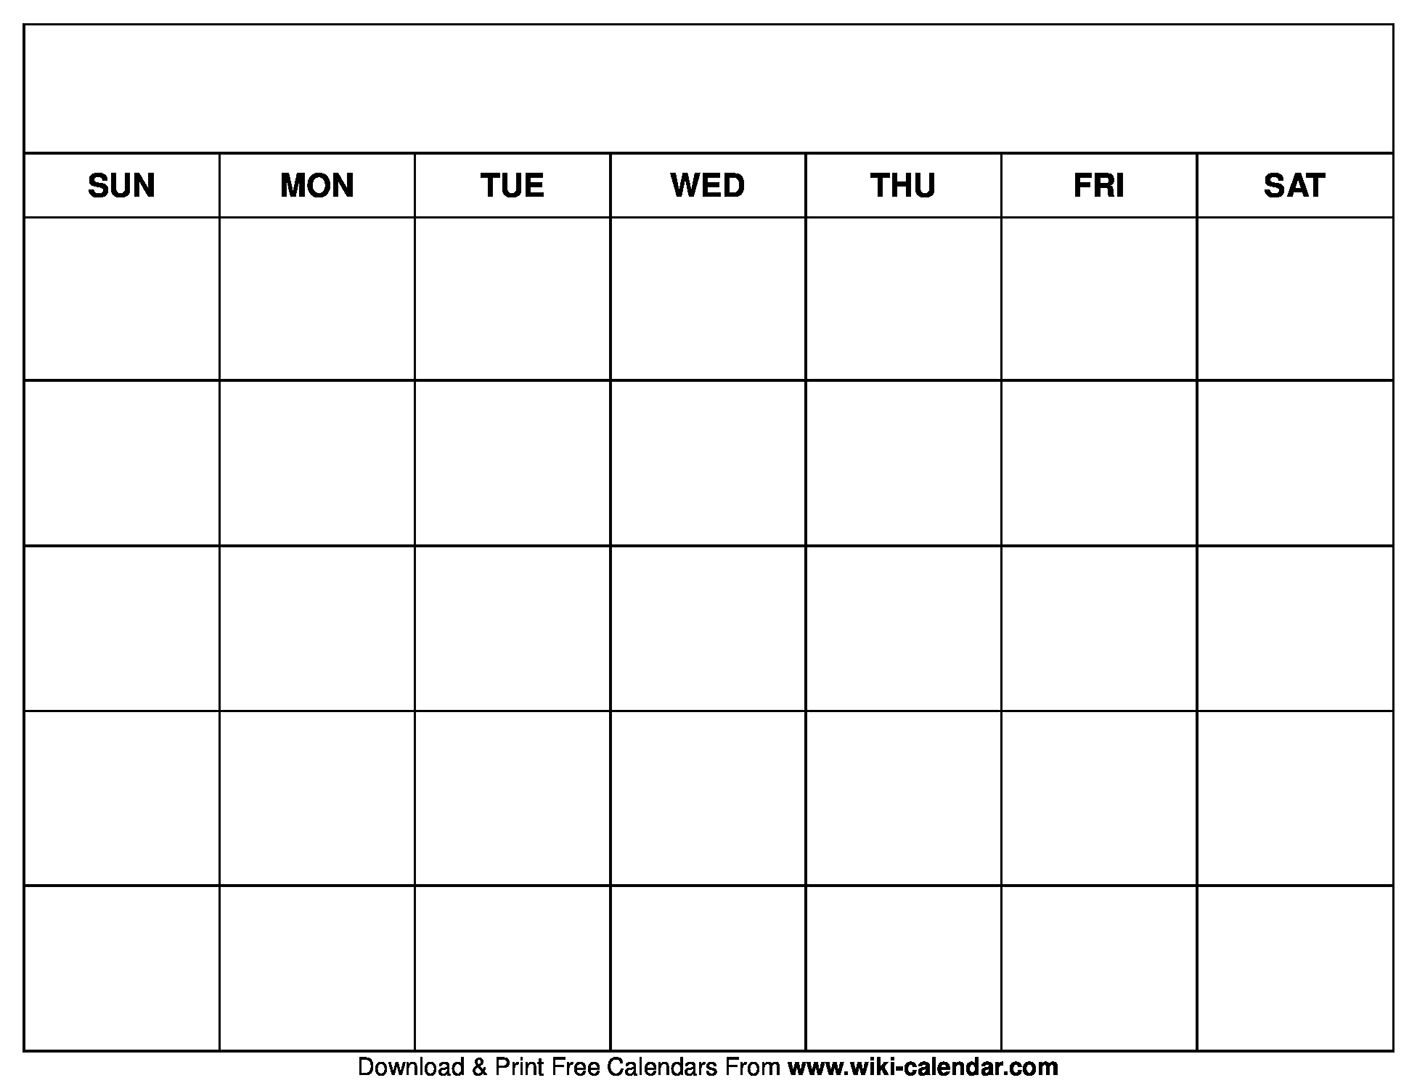 Free Fill In Blank Calendar Templates | Get Your Calendar for Fill In The Blank Calendar